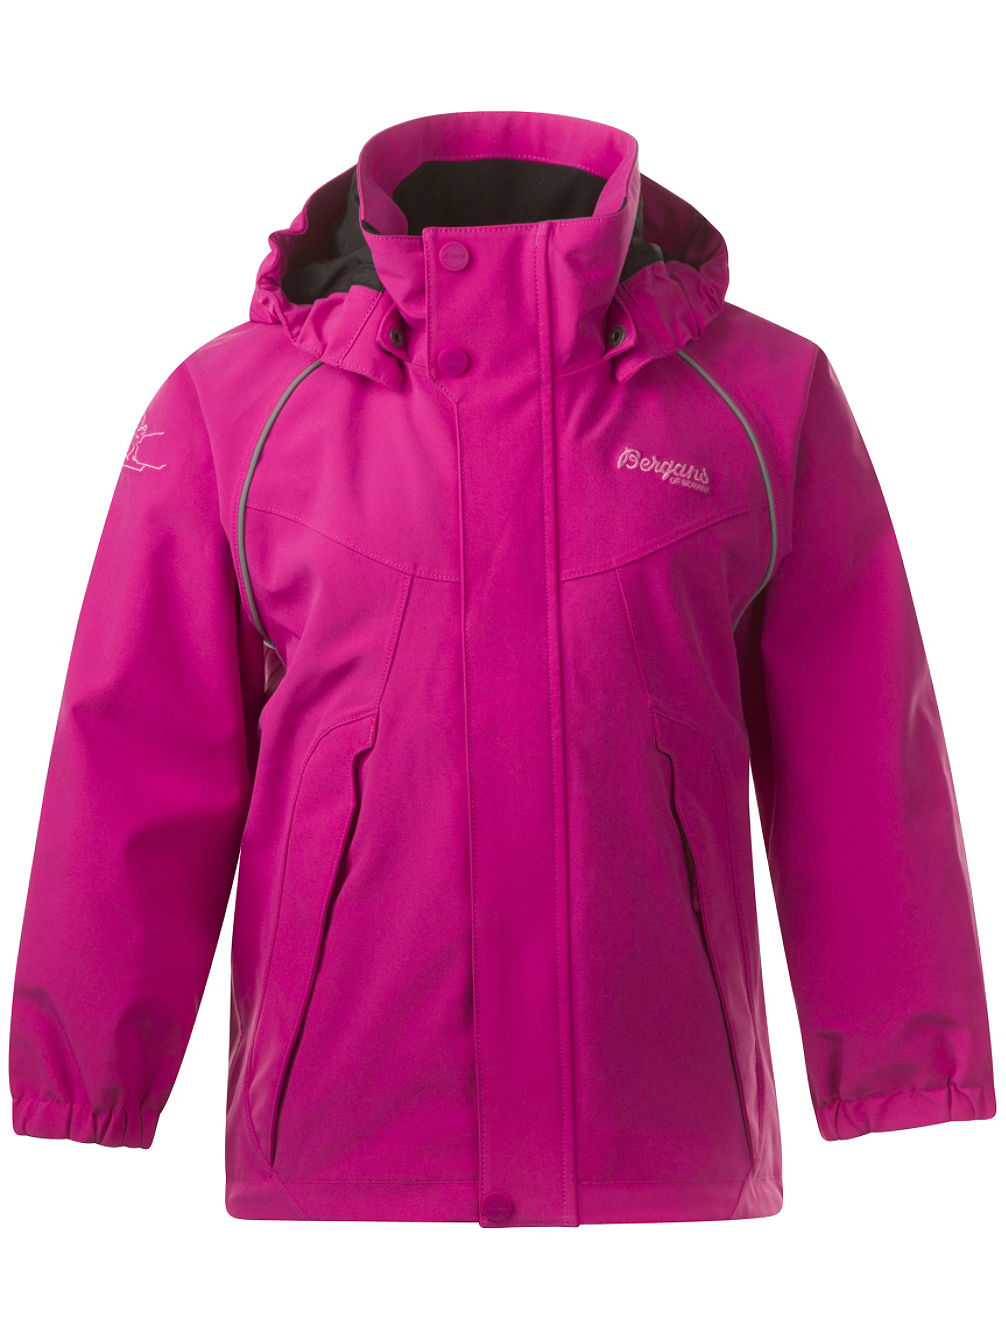 ce19e075 Buy Bergans Ruffen Jacket Youth online at Blue Tomato